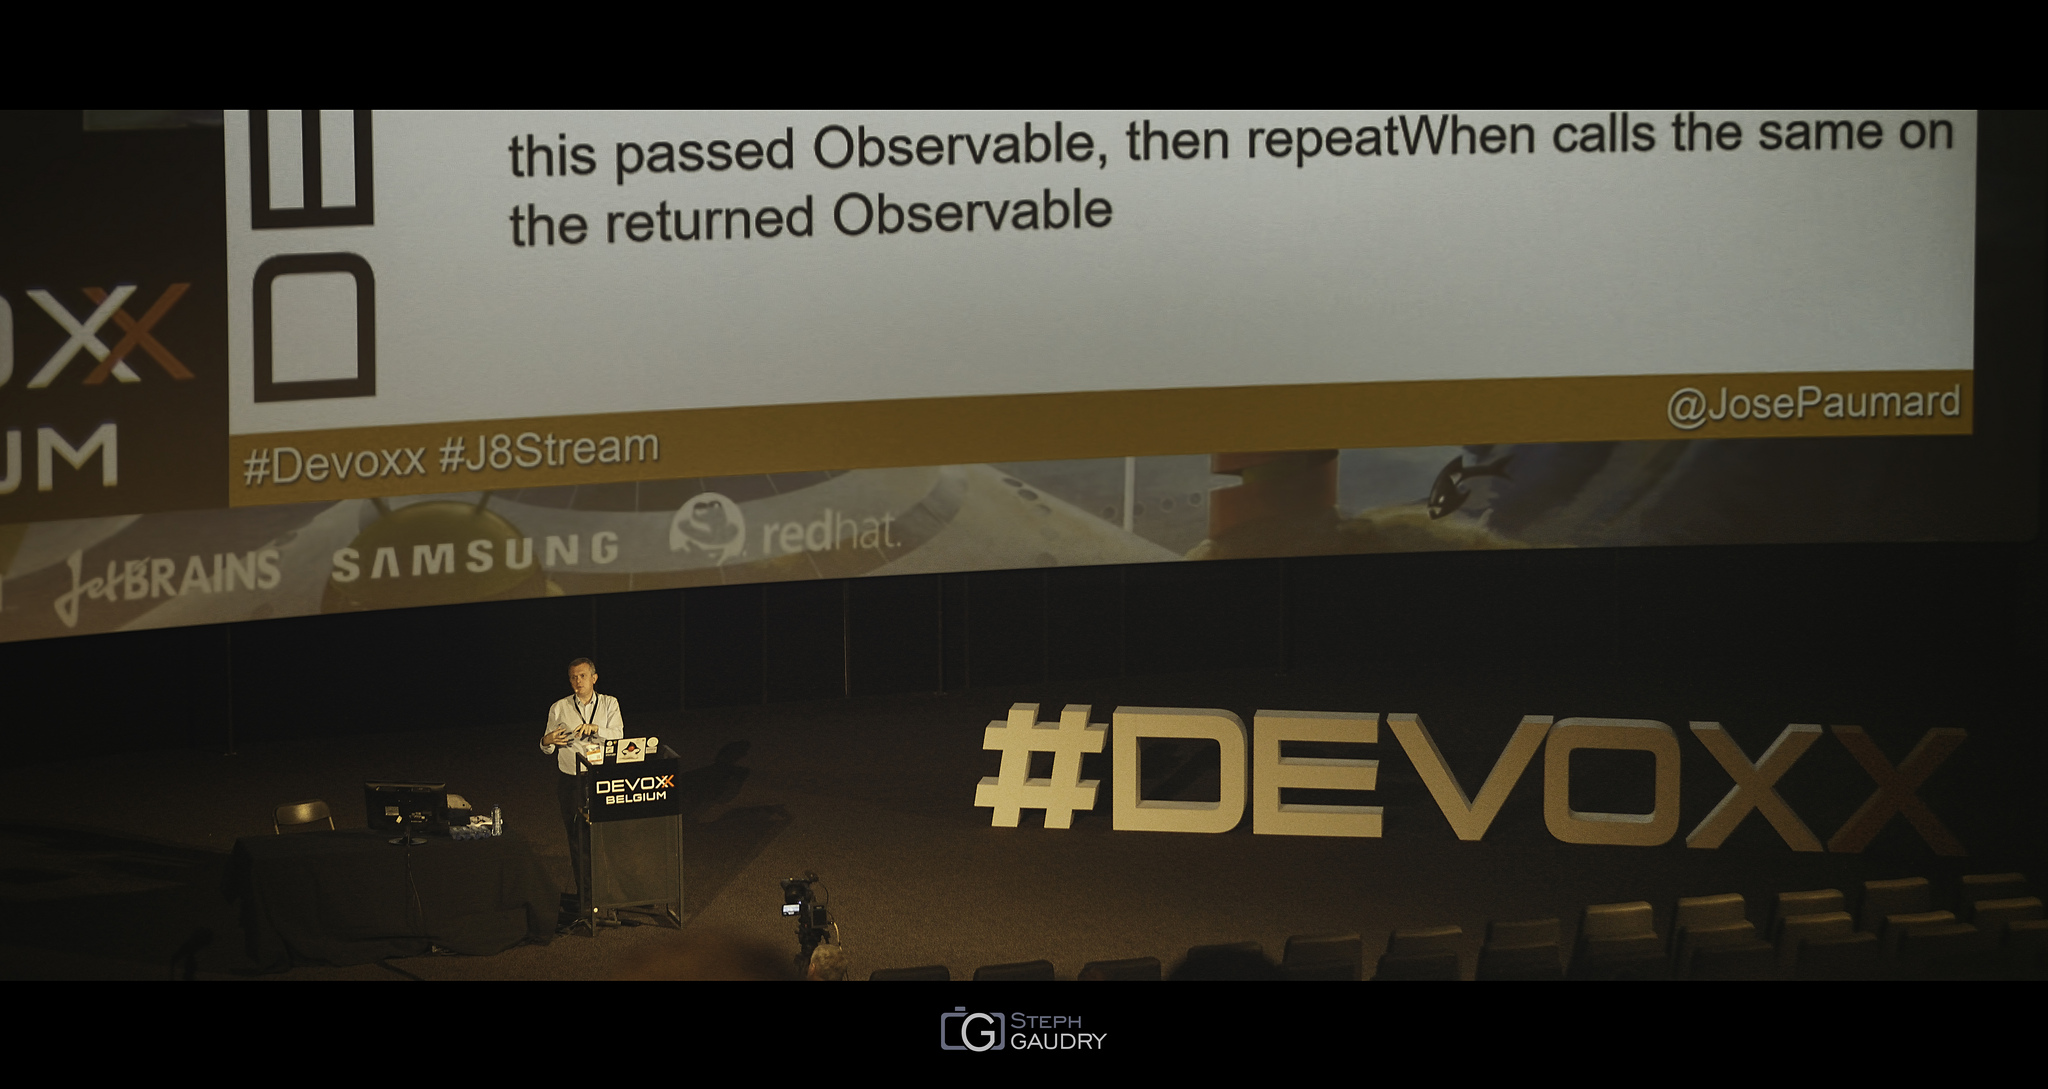 Devoxx2015 - Java 8 Stream and RxJava